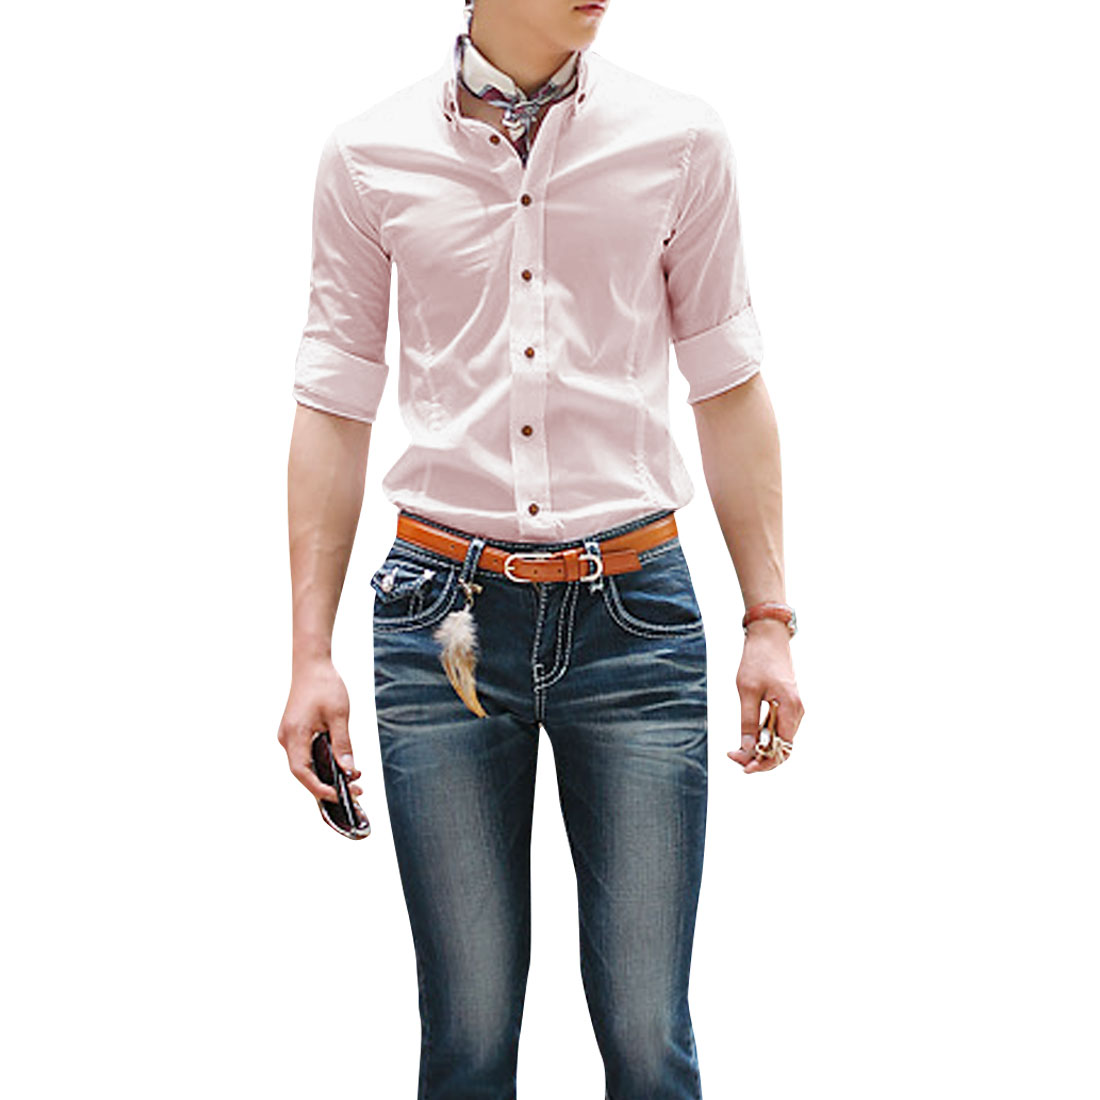 Men Single Breasted Front Straight Design Slim Fit Shirt Light Pink M